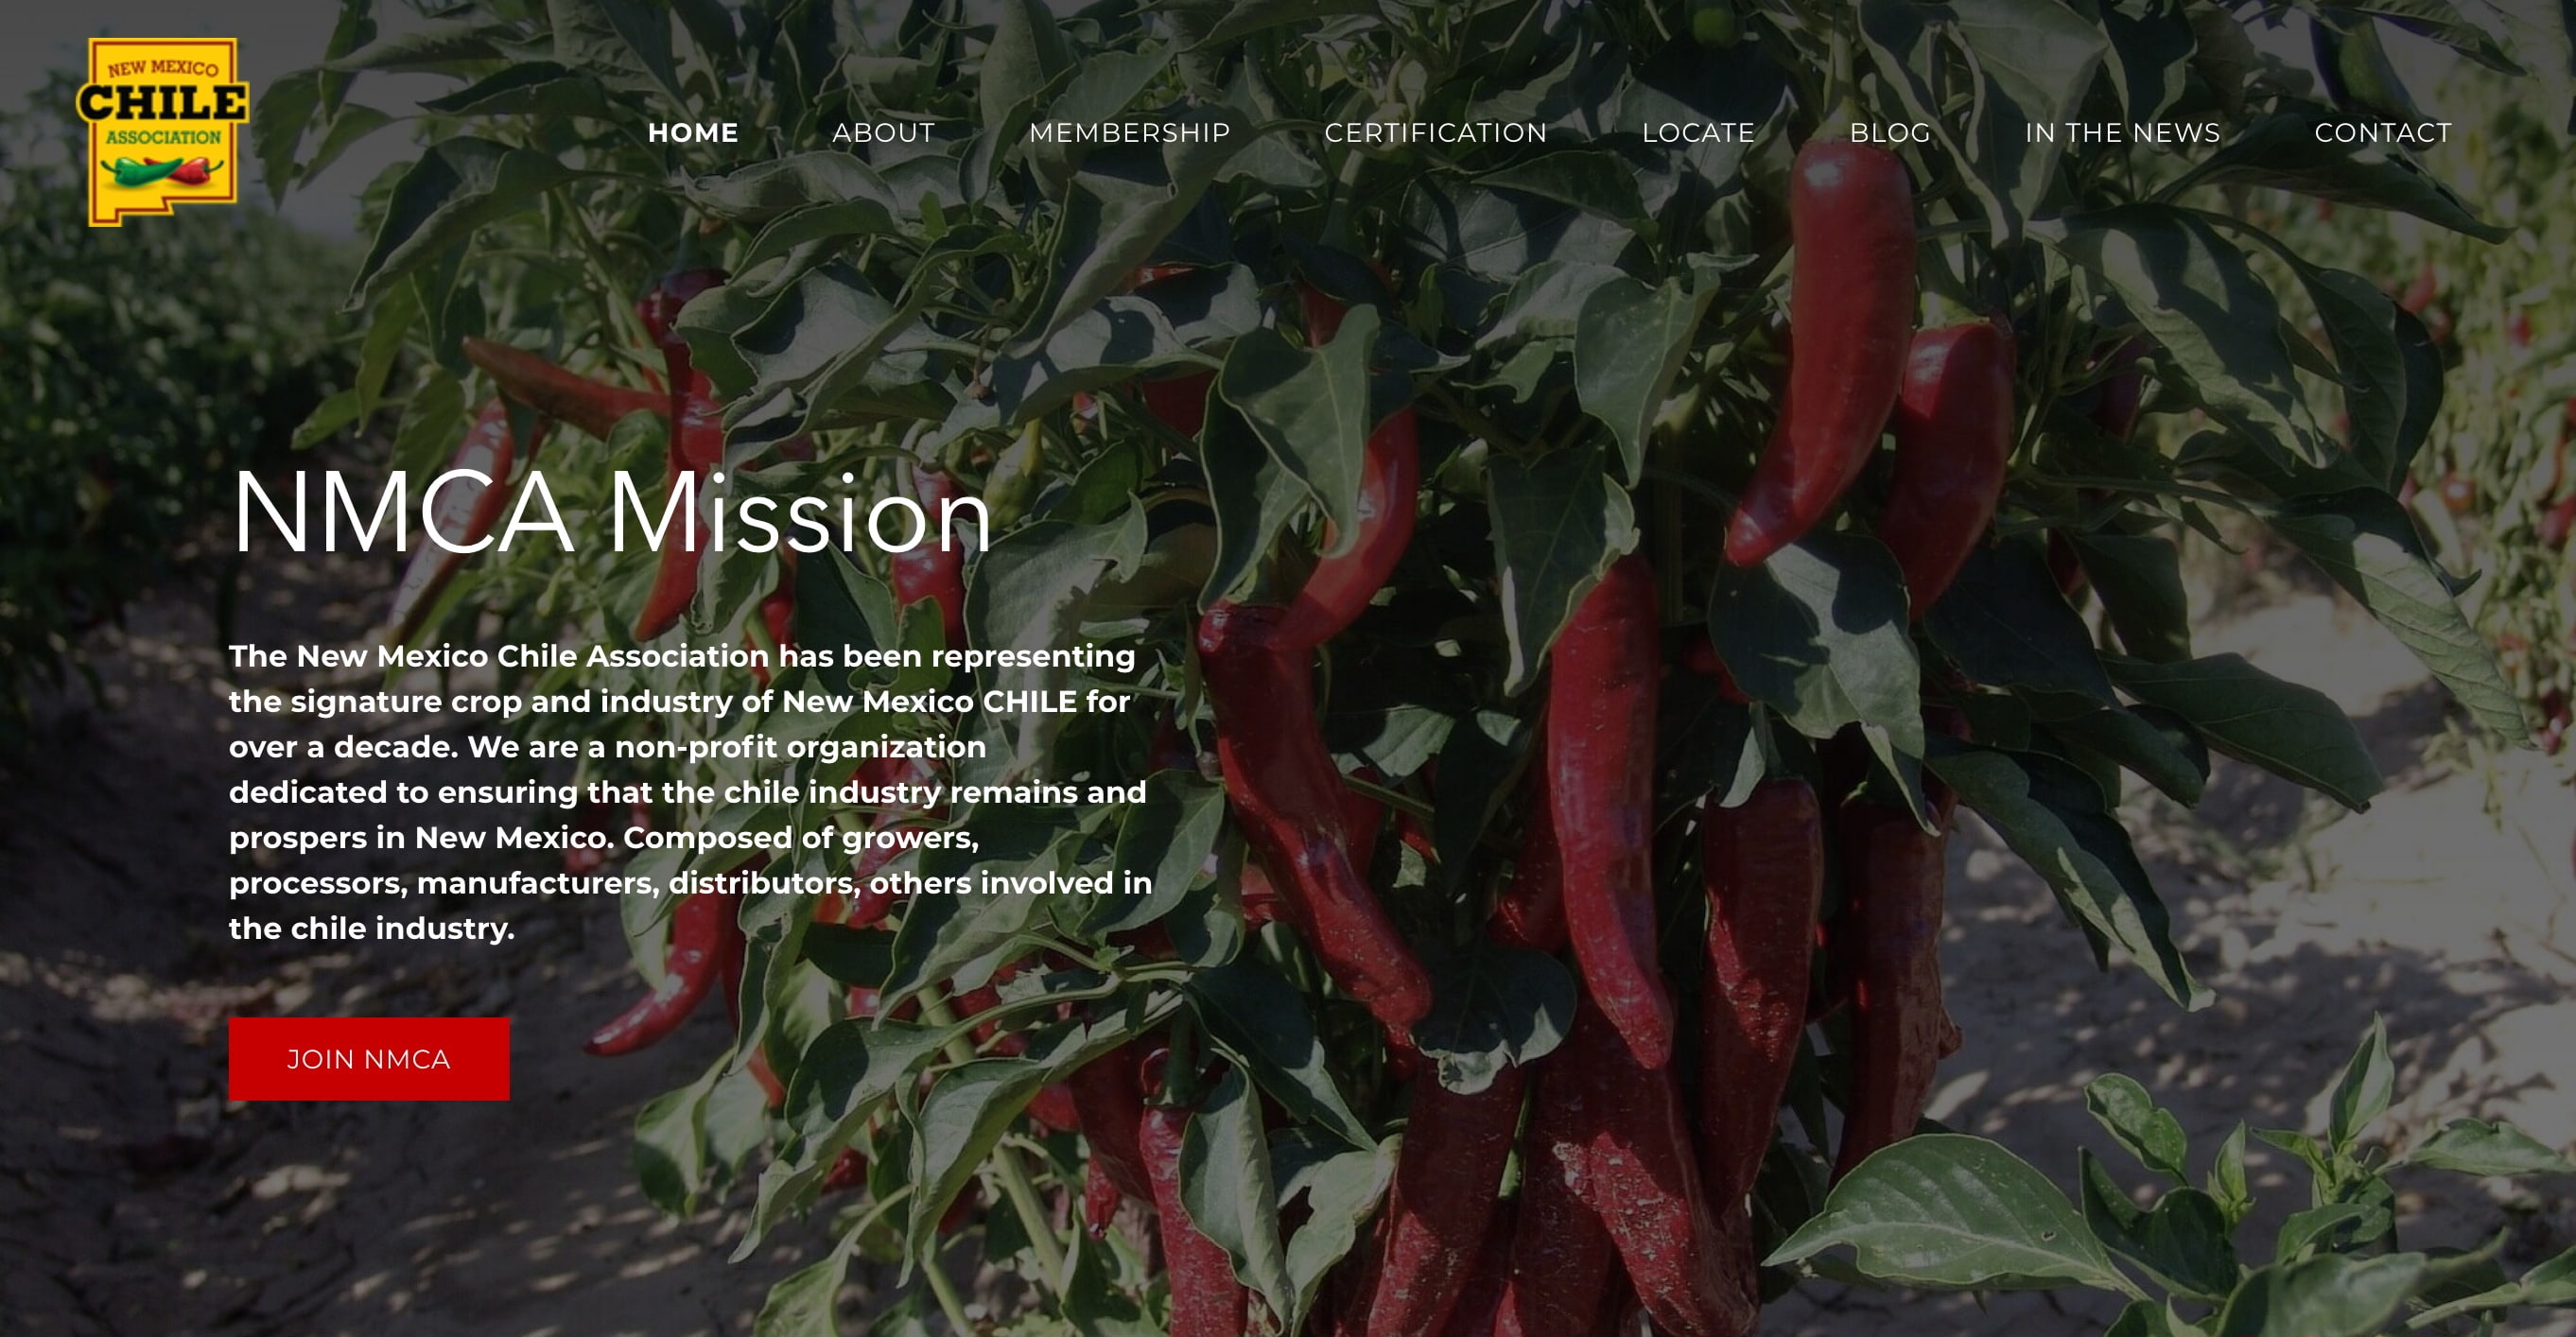 New Mexico Chile Association